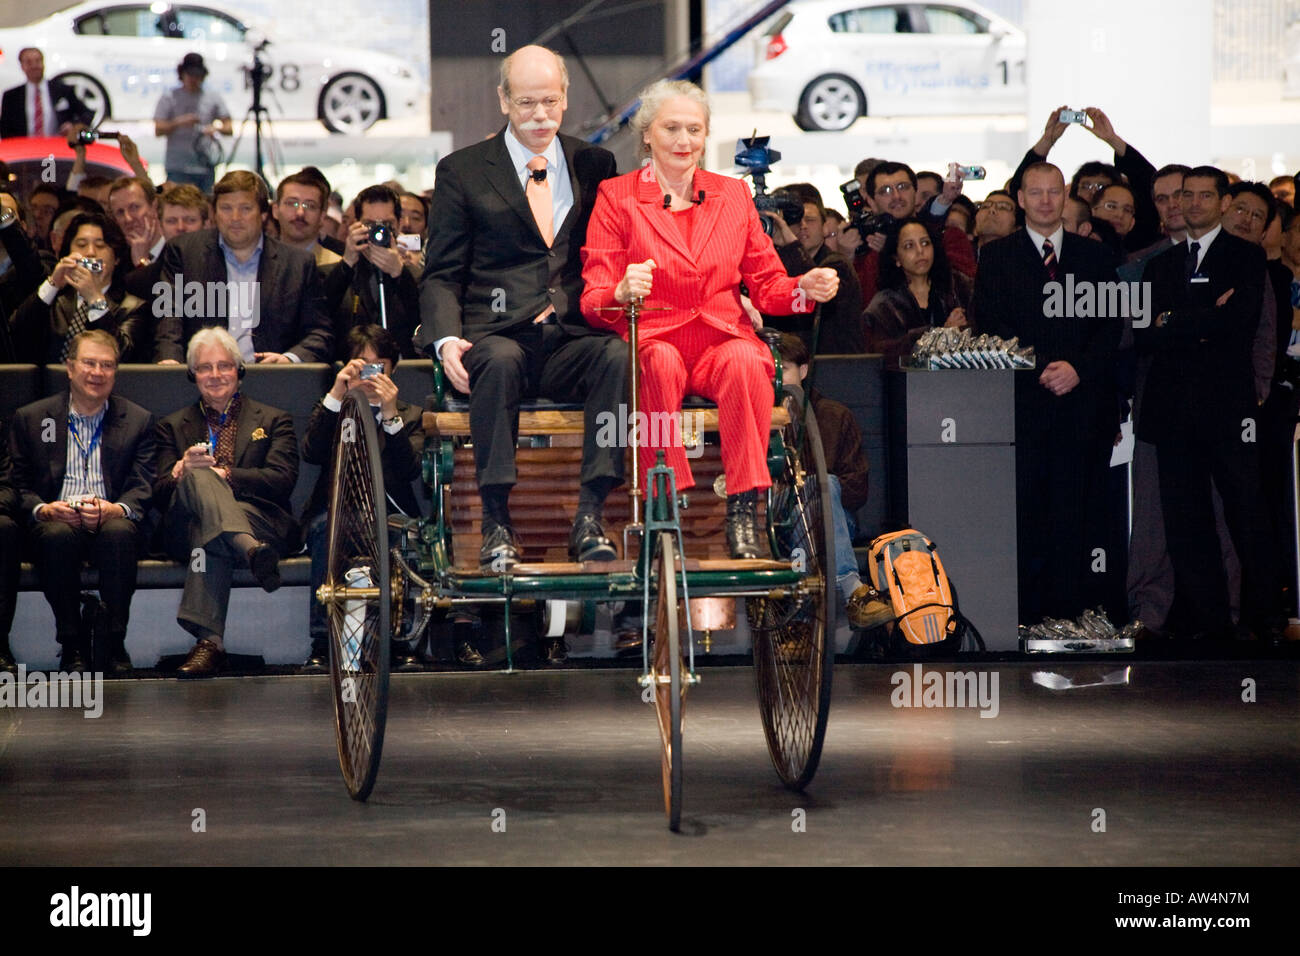 Daimler CEO Dieter Zetsche at a Motor Show, world's oldest car, driven by the founder's descendant, Jutta - Stock Image